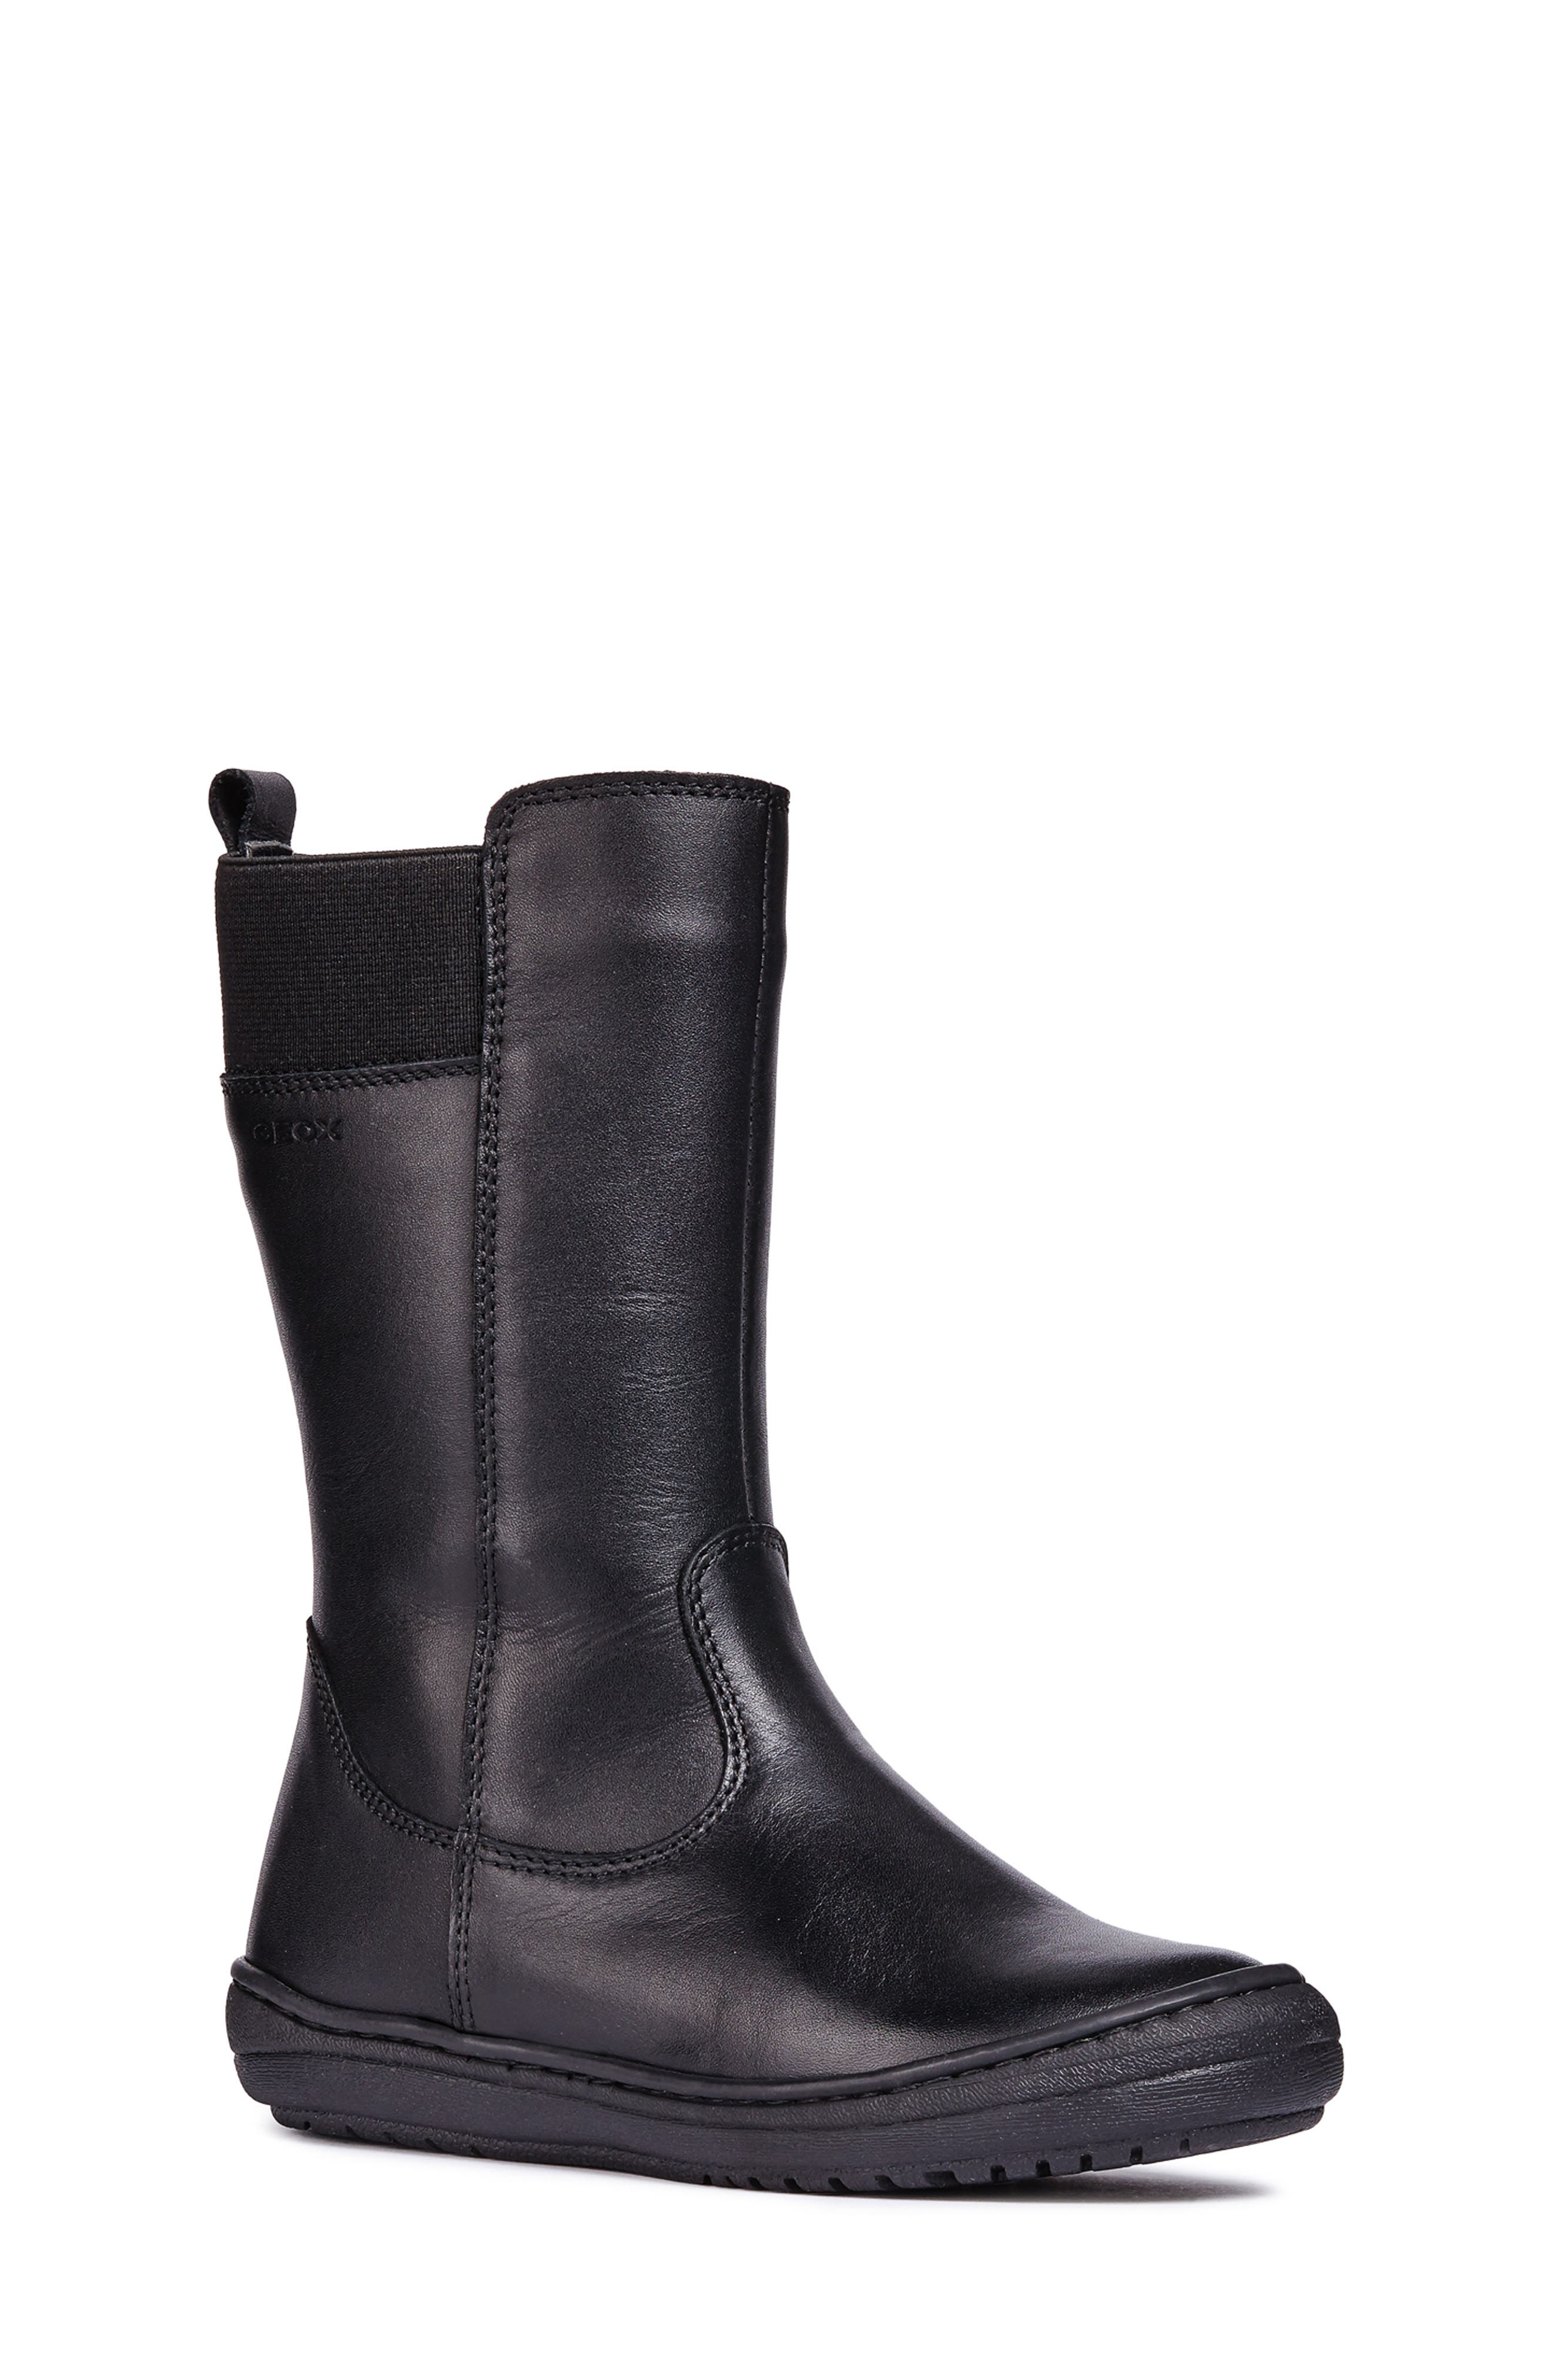 Hadriel Boot,                             Main thumbnail 1, color,                             BLACK